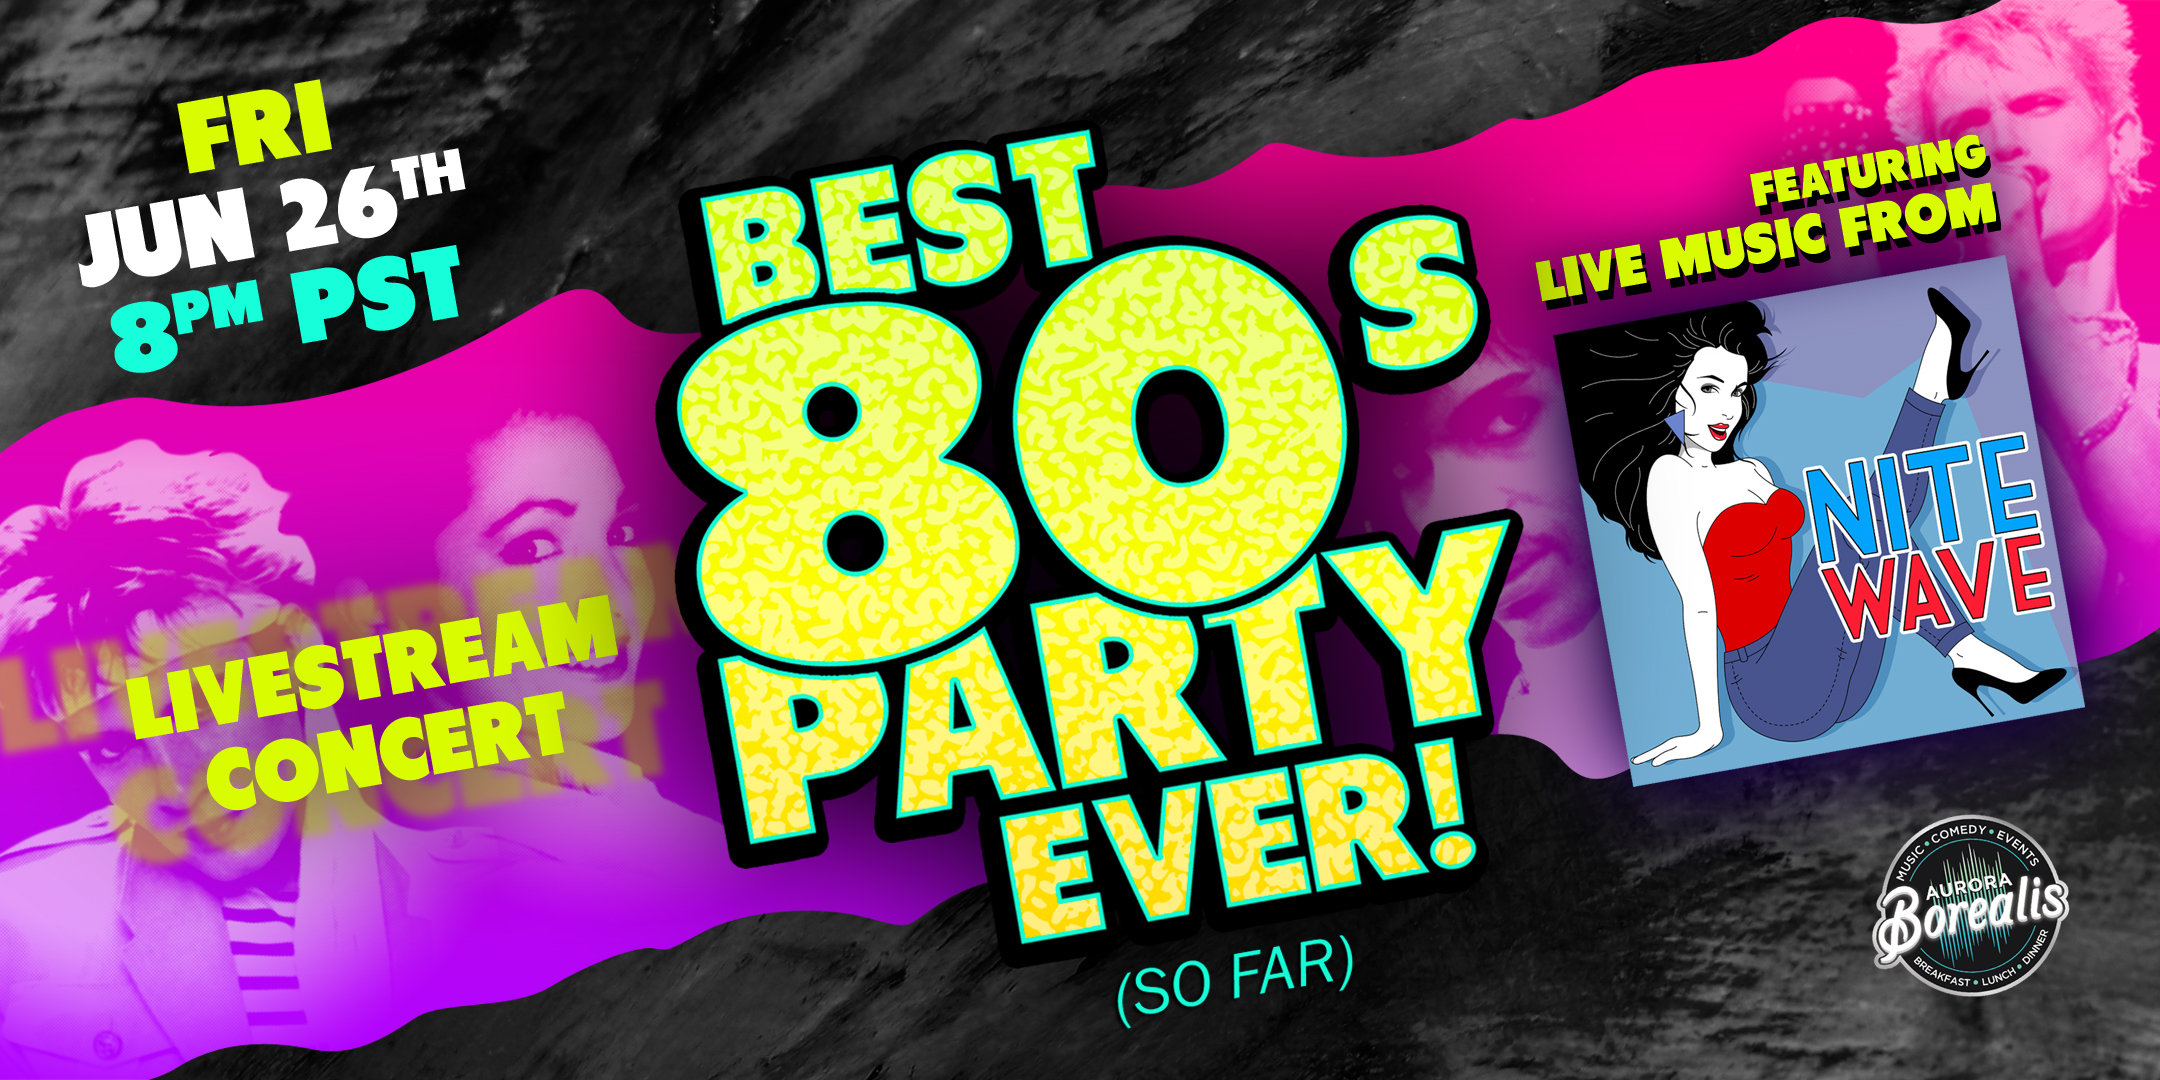 The Best Virtual 80's Party Ever! (so far) with Nite Wave